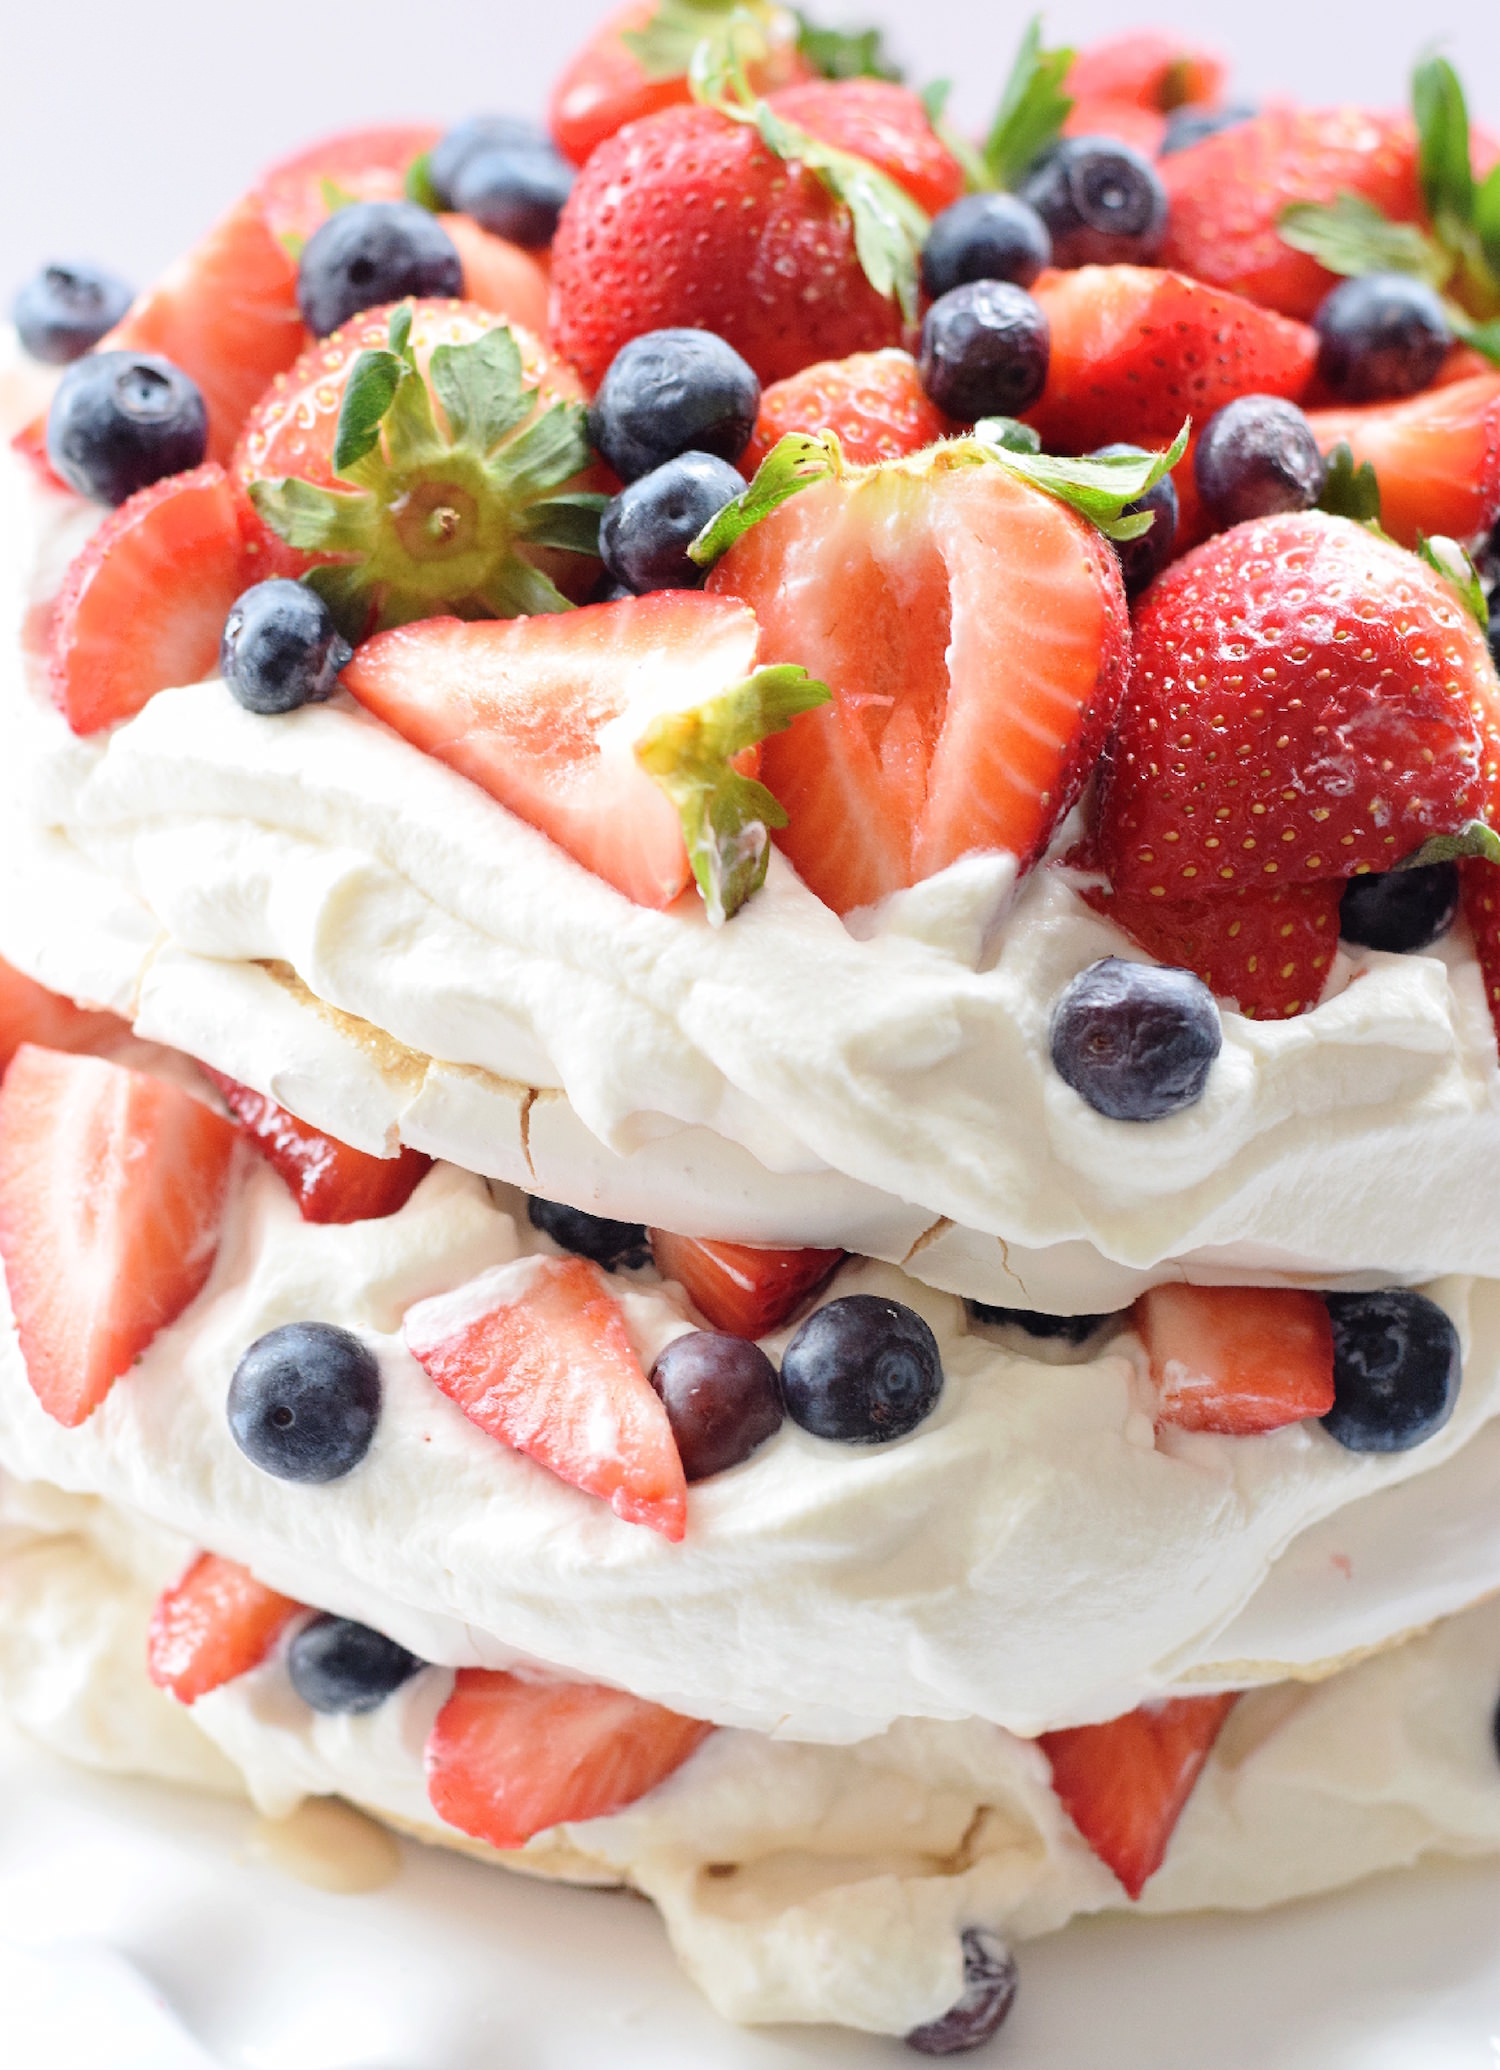 Mixed Berry Layer Pavlova Cake: chewy, sticky meringue layers filled with fresh whipped cream and assorted berries. Beautiful and gluten-free!